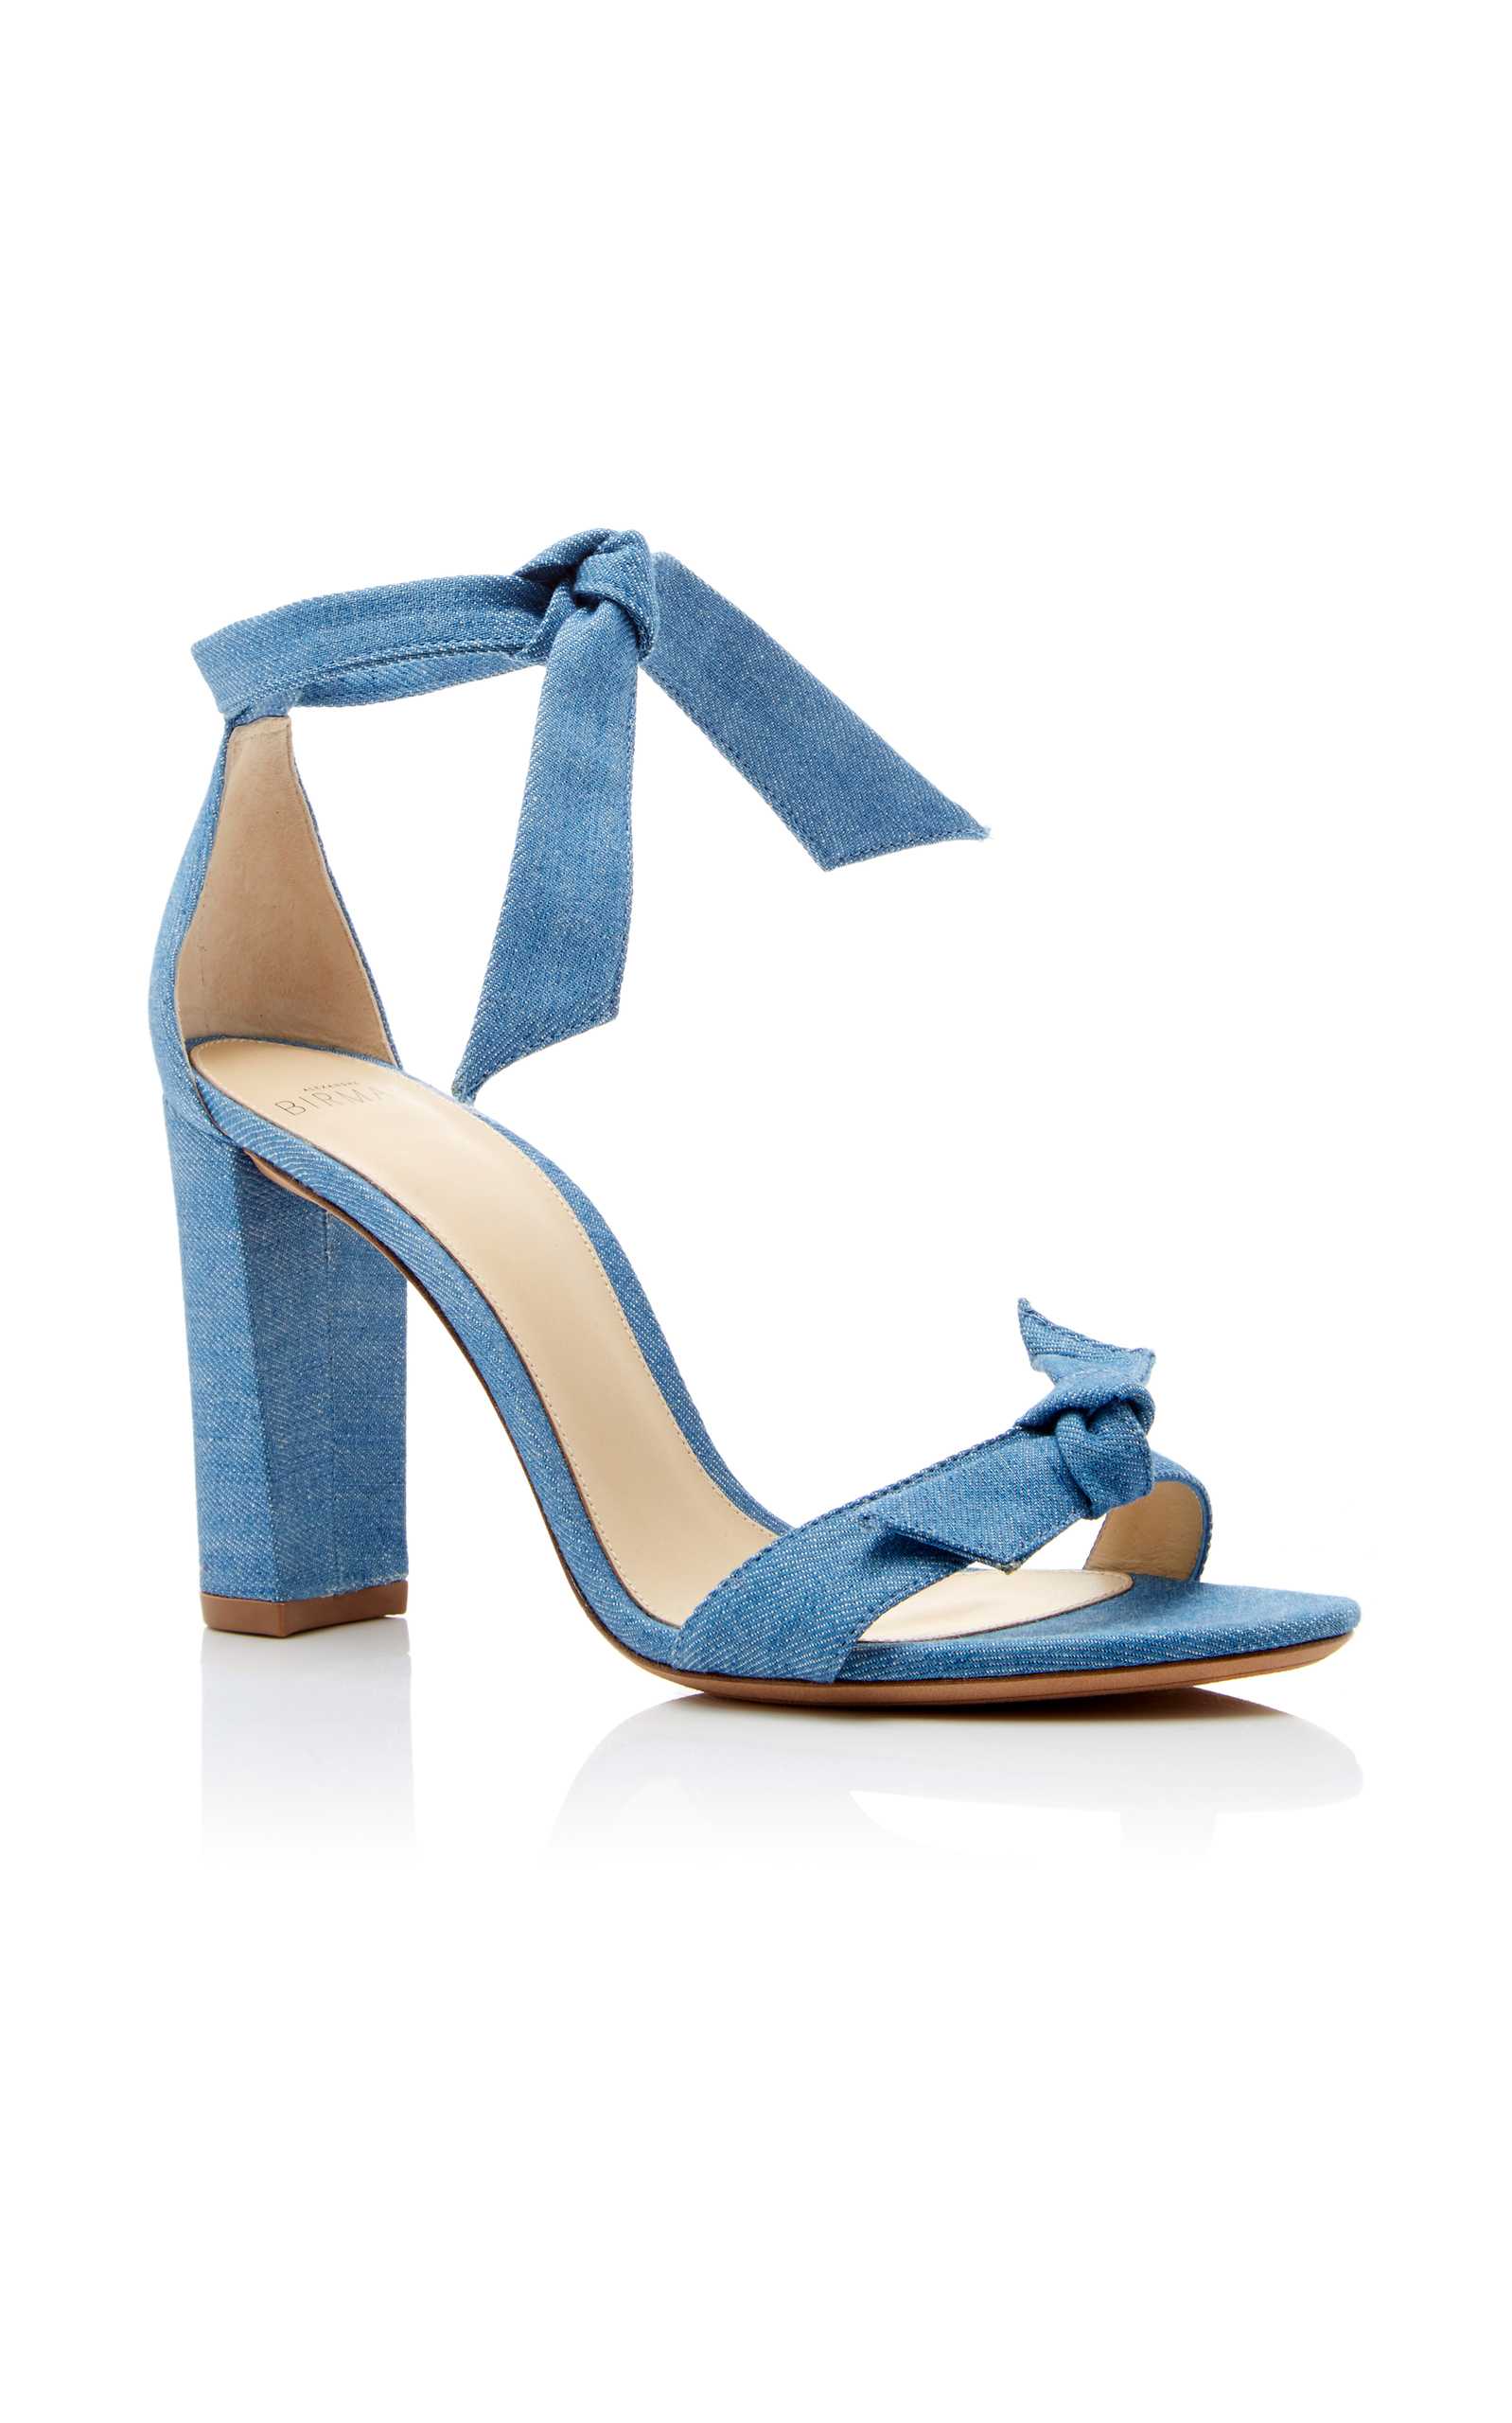 Alexandre Birman bow denim sandals outlet locations cheap online I68qE